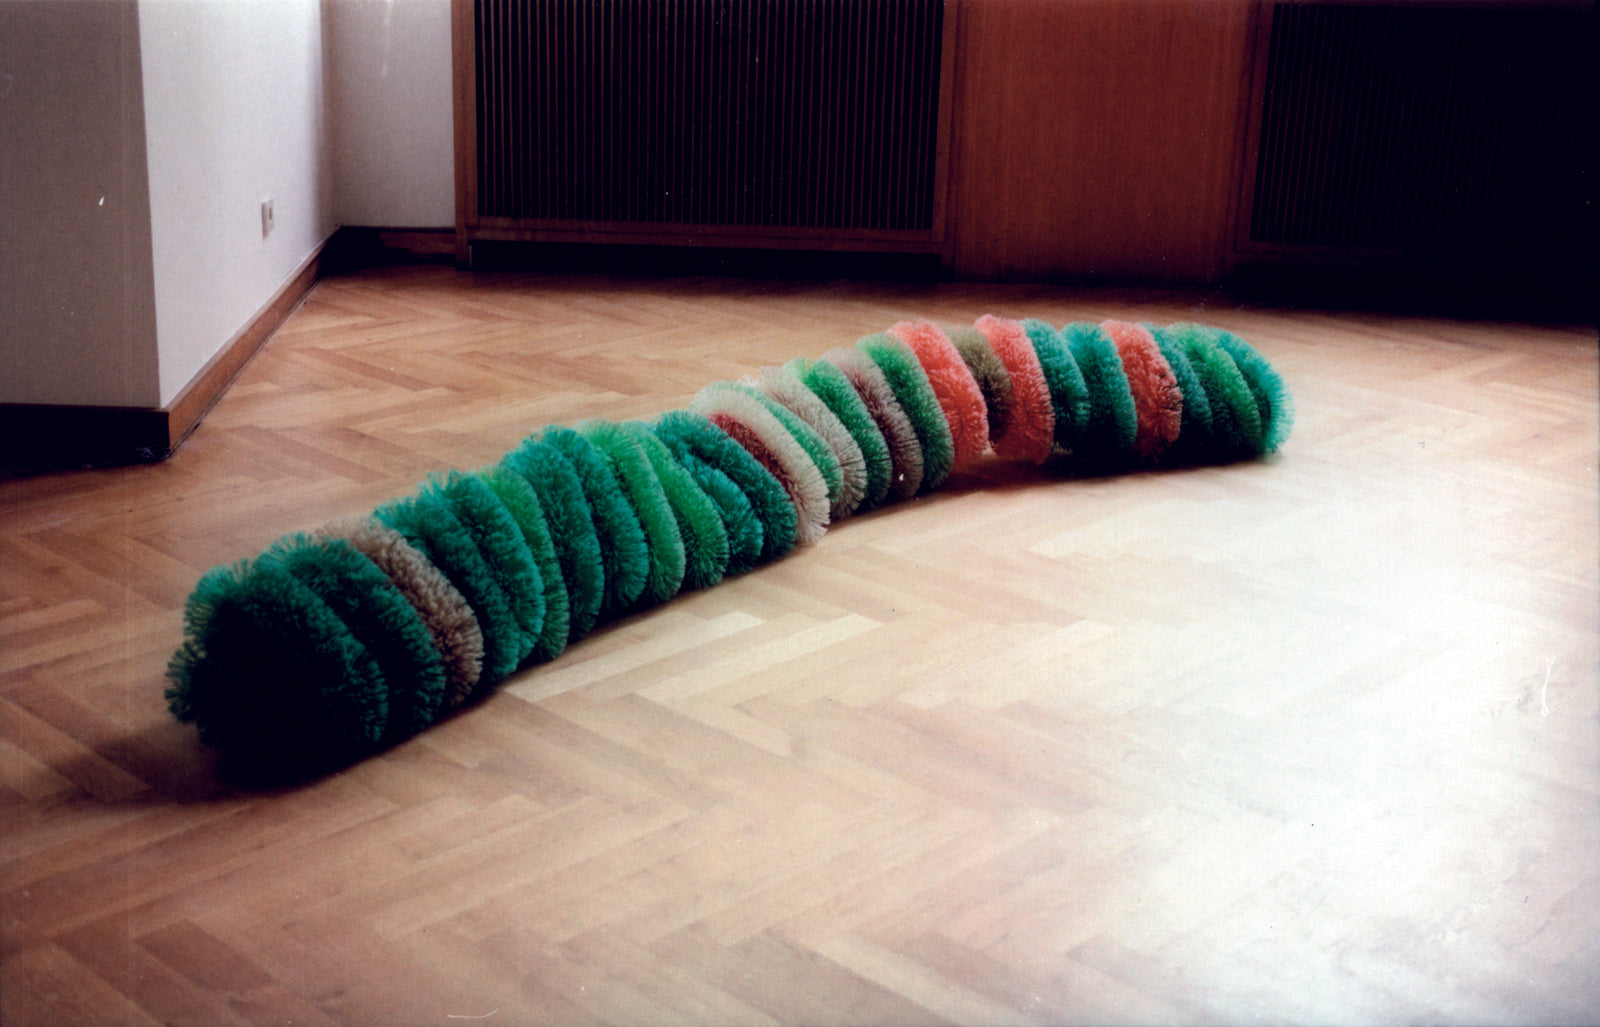 Pino Pascali, Installation view, 1997, Galerie Michael Janssen, Cologne